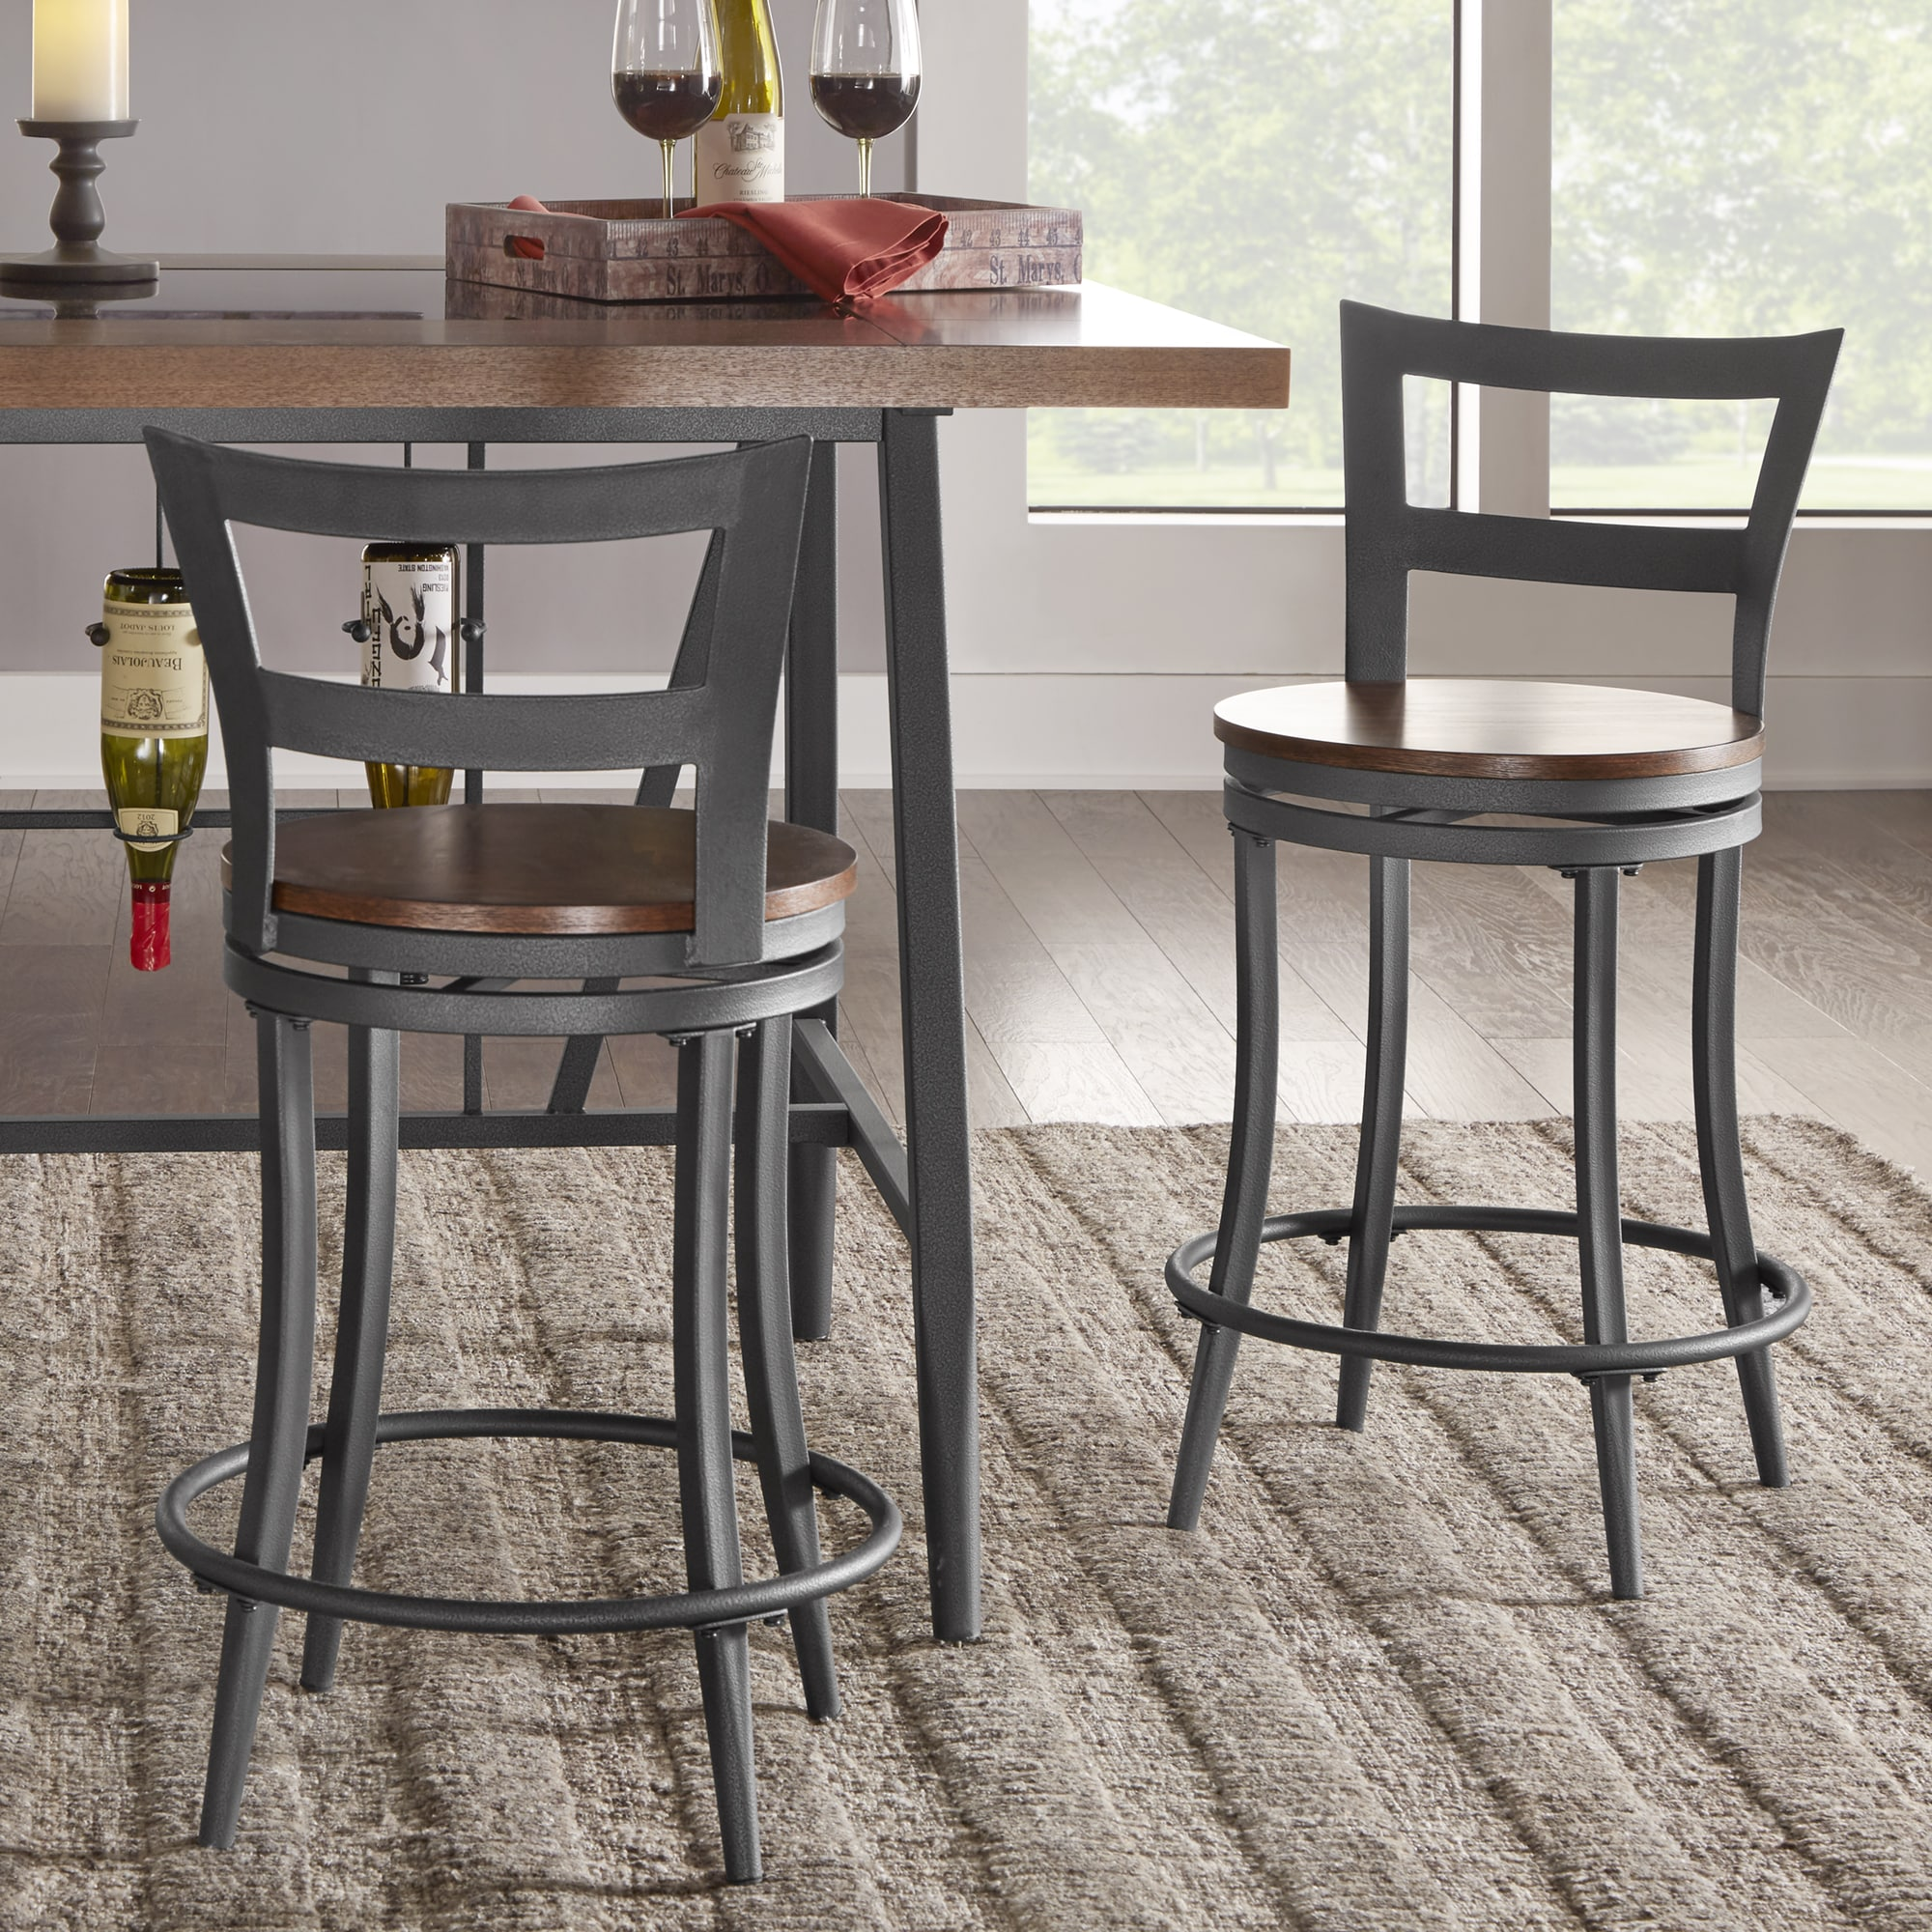 decor kitchen the home in counter minimalist stools with bar artistic low upholstered leather combine profile swivel stool height cozy